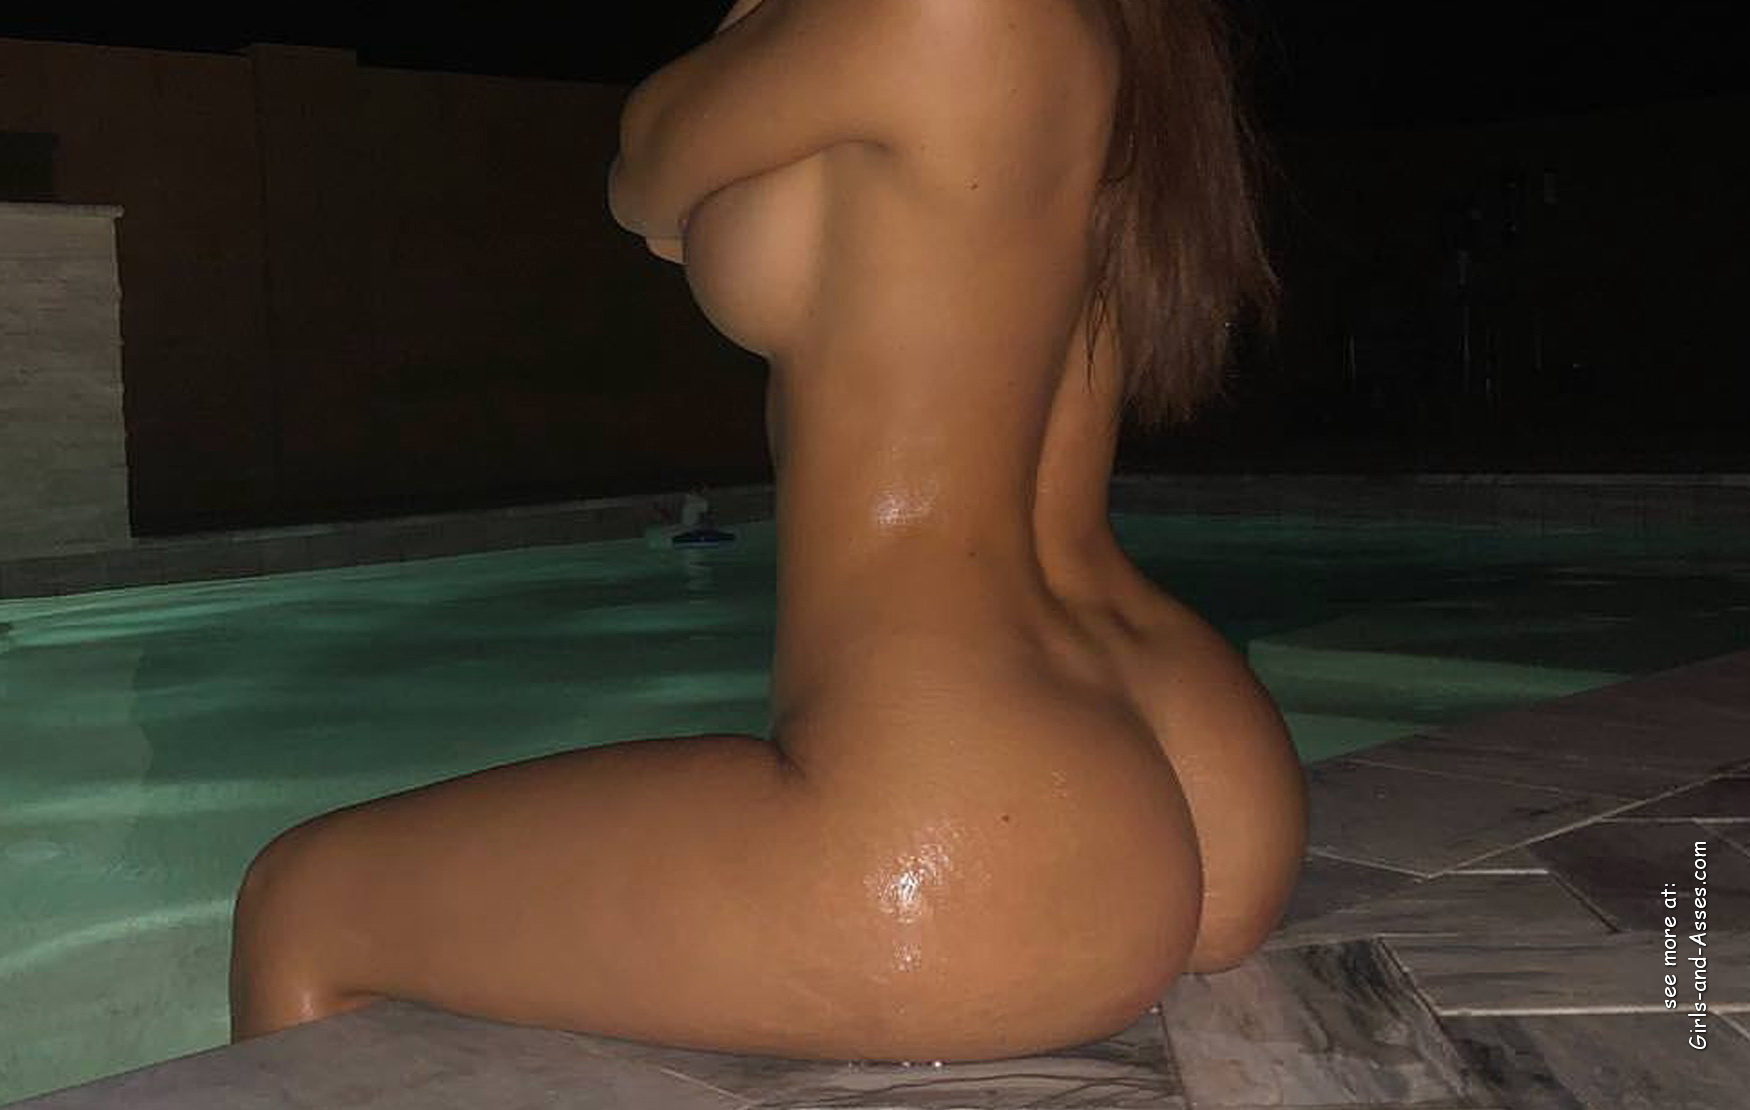 beautiful naked ass by the pool photo 02640